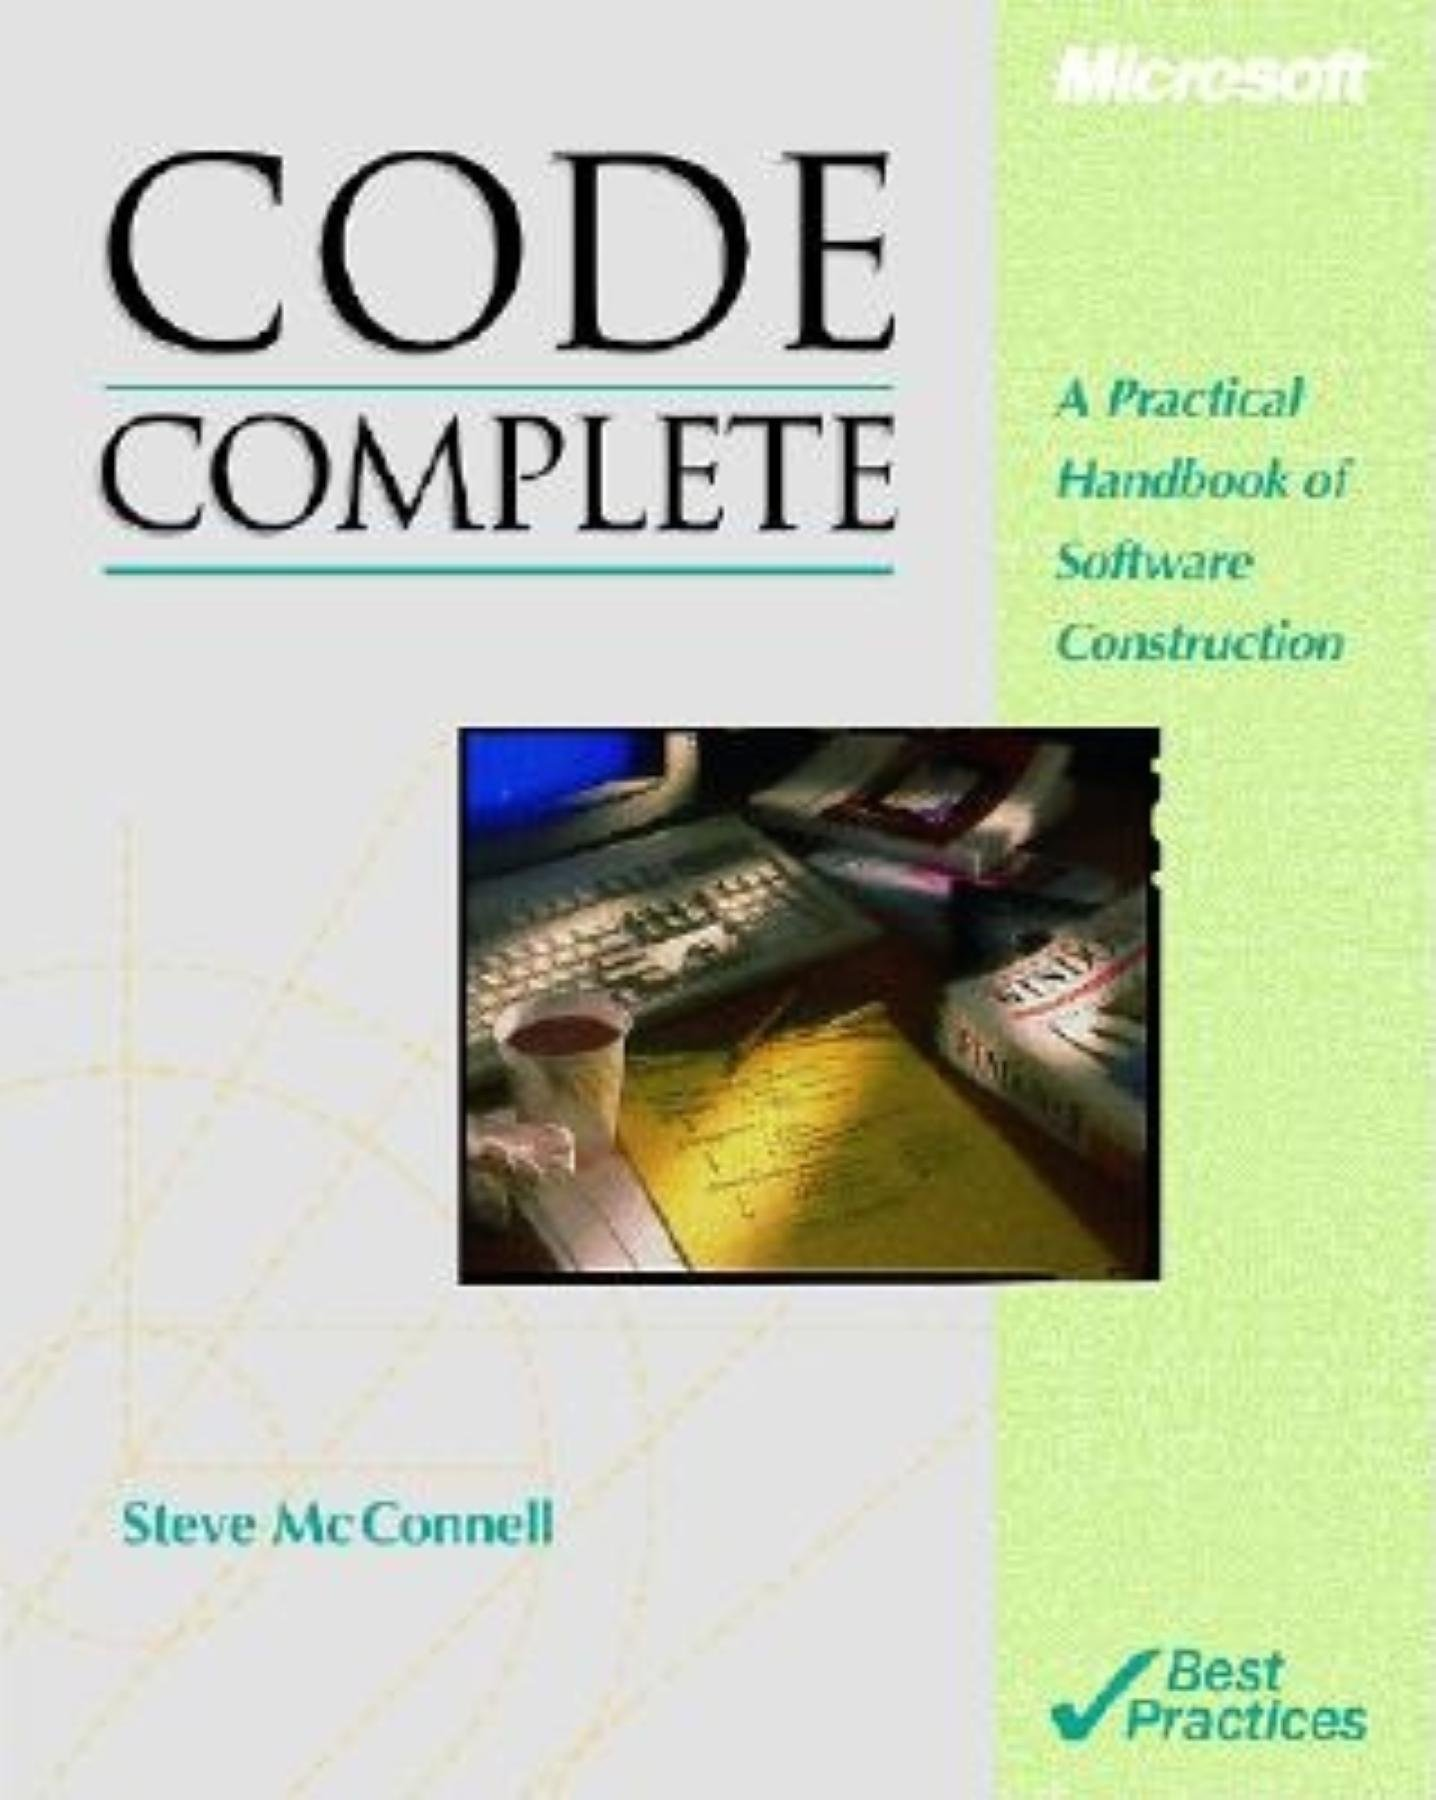 Code Complete: A Practical Handbook of Software Construction: Amazon.co.uk:  Steven C. McConnell: 9781556154843: Books